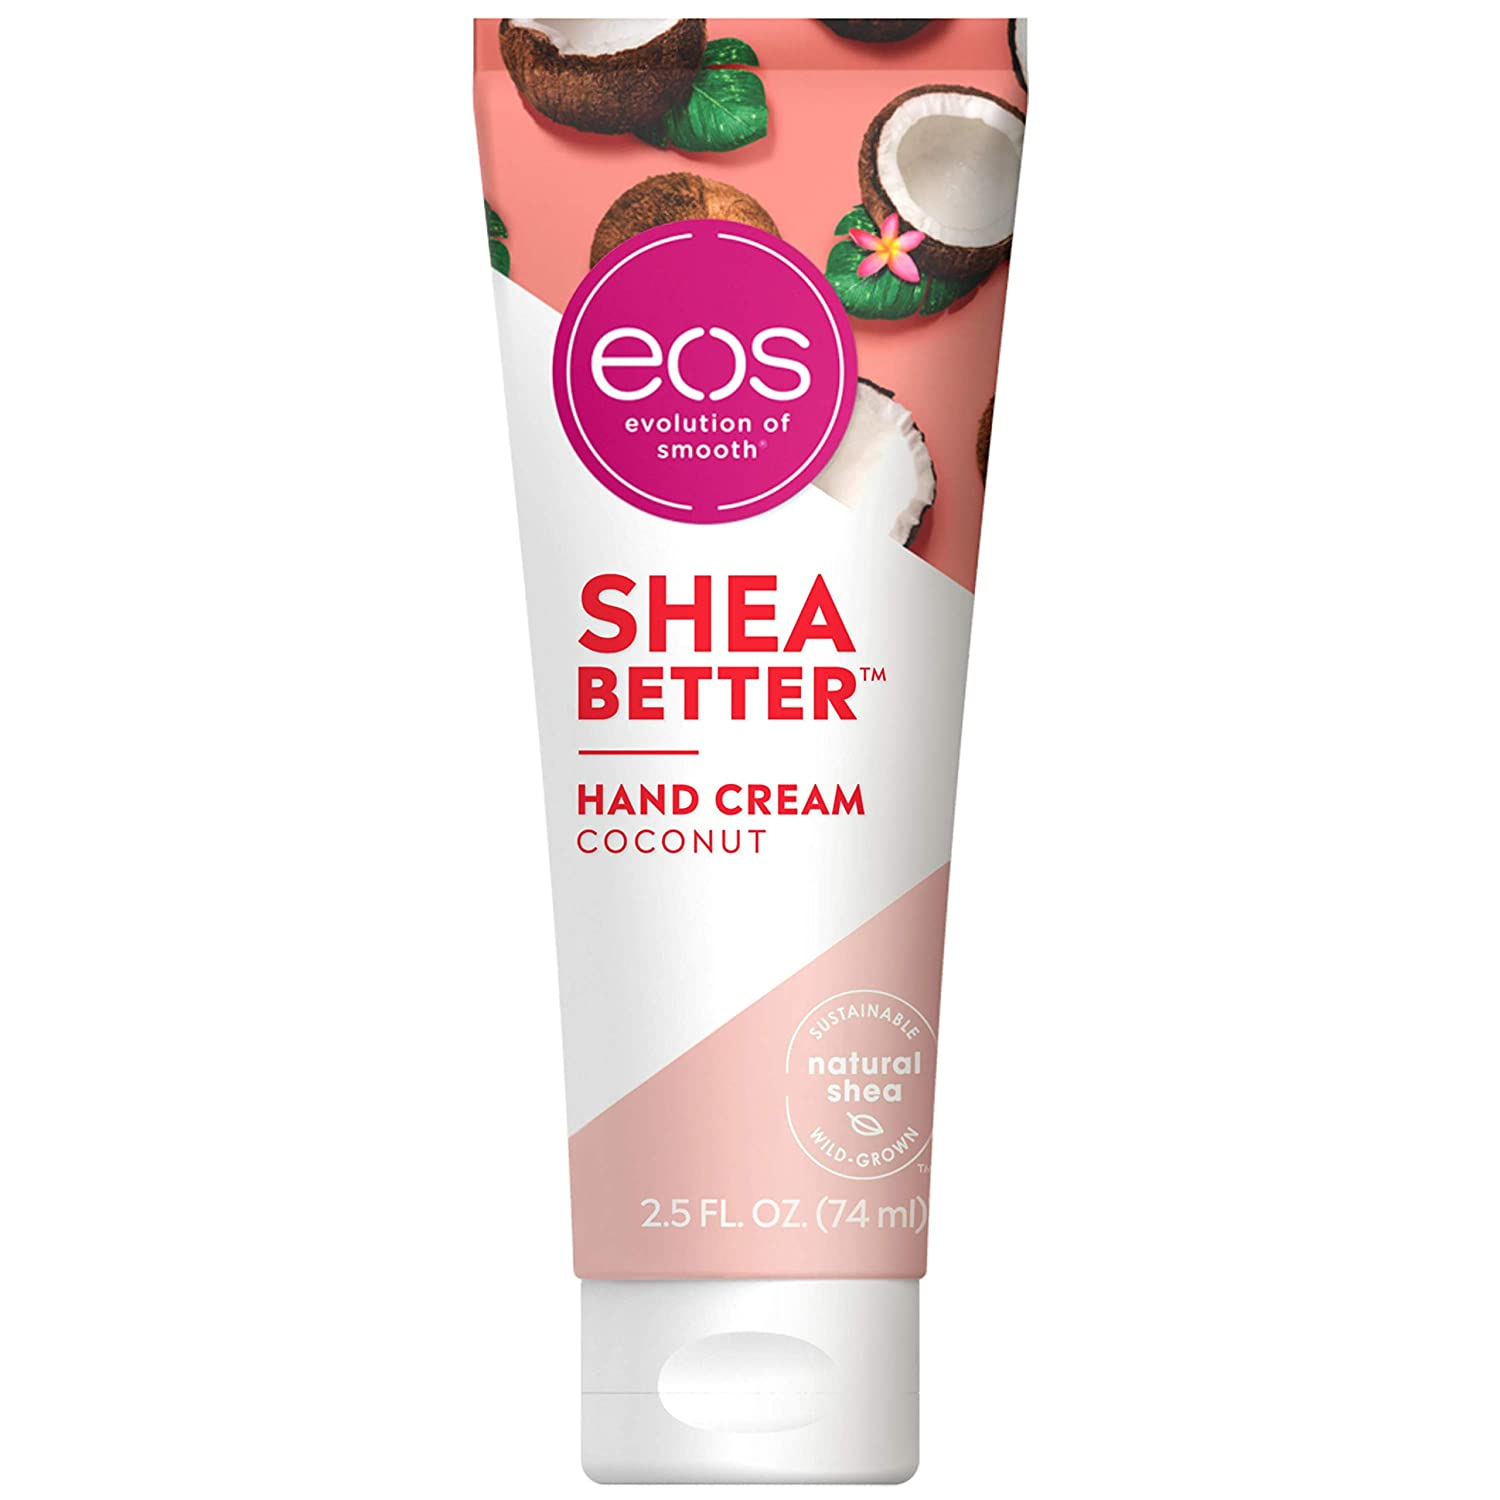 EOS Shea Better Coconut Hand Cream